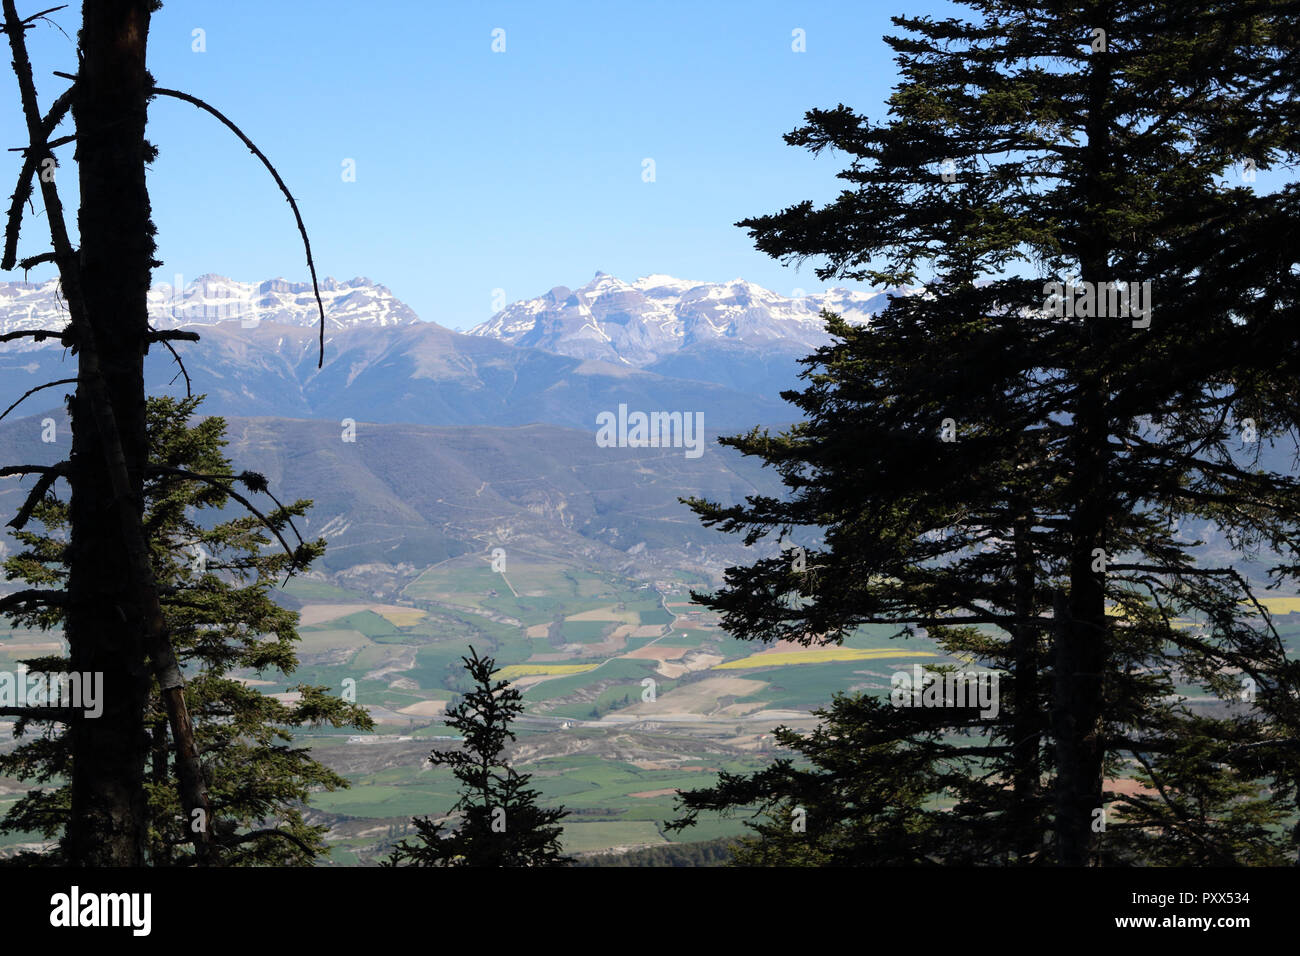 Fir and pine trees on the Peña Oroel mount, with the snow-clad Pyrenees as background, a wide valley with blue sky and some bushes, in Aragon, Spain - Stock Image